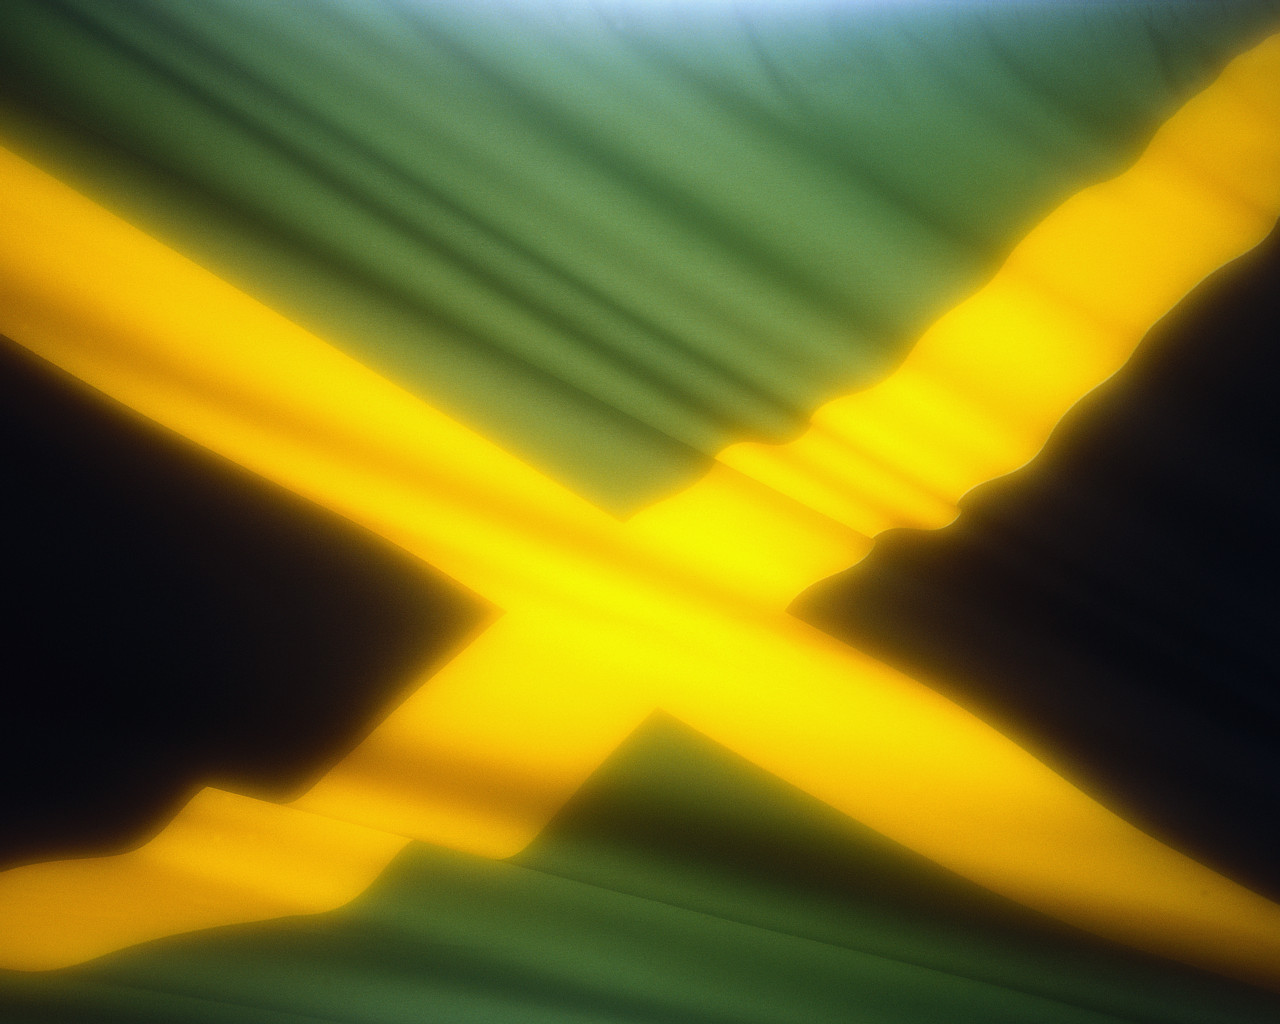 vision 2030 jamaica Vision 2030 jamaica audio book - 08 - what are the goals, outcomes & strategies of vision 2030 - duration: 3 minutes, 47 seconds.